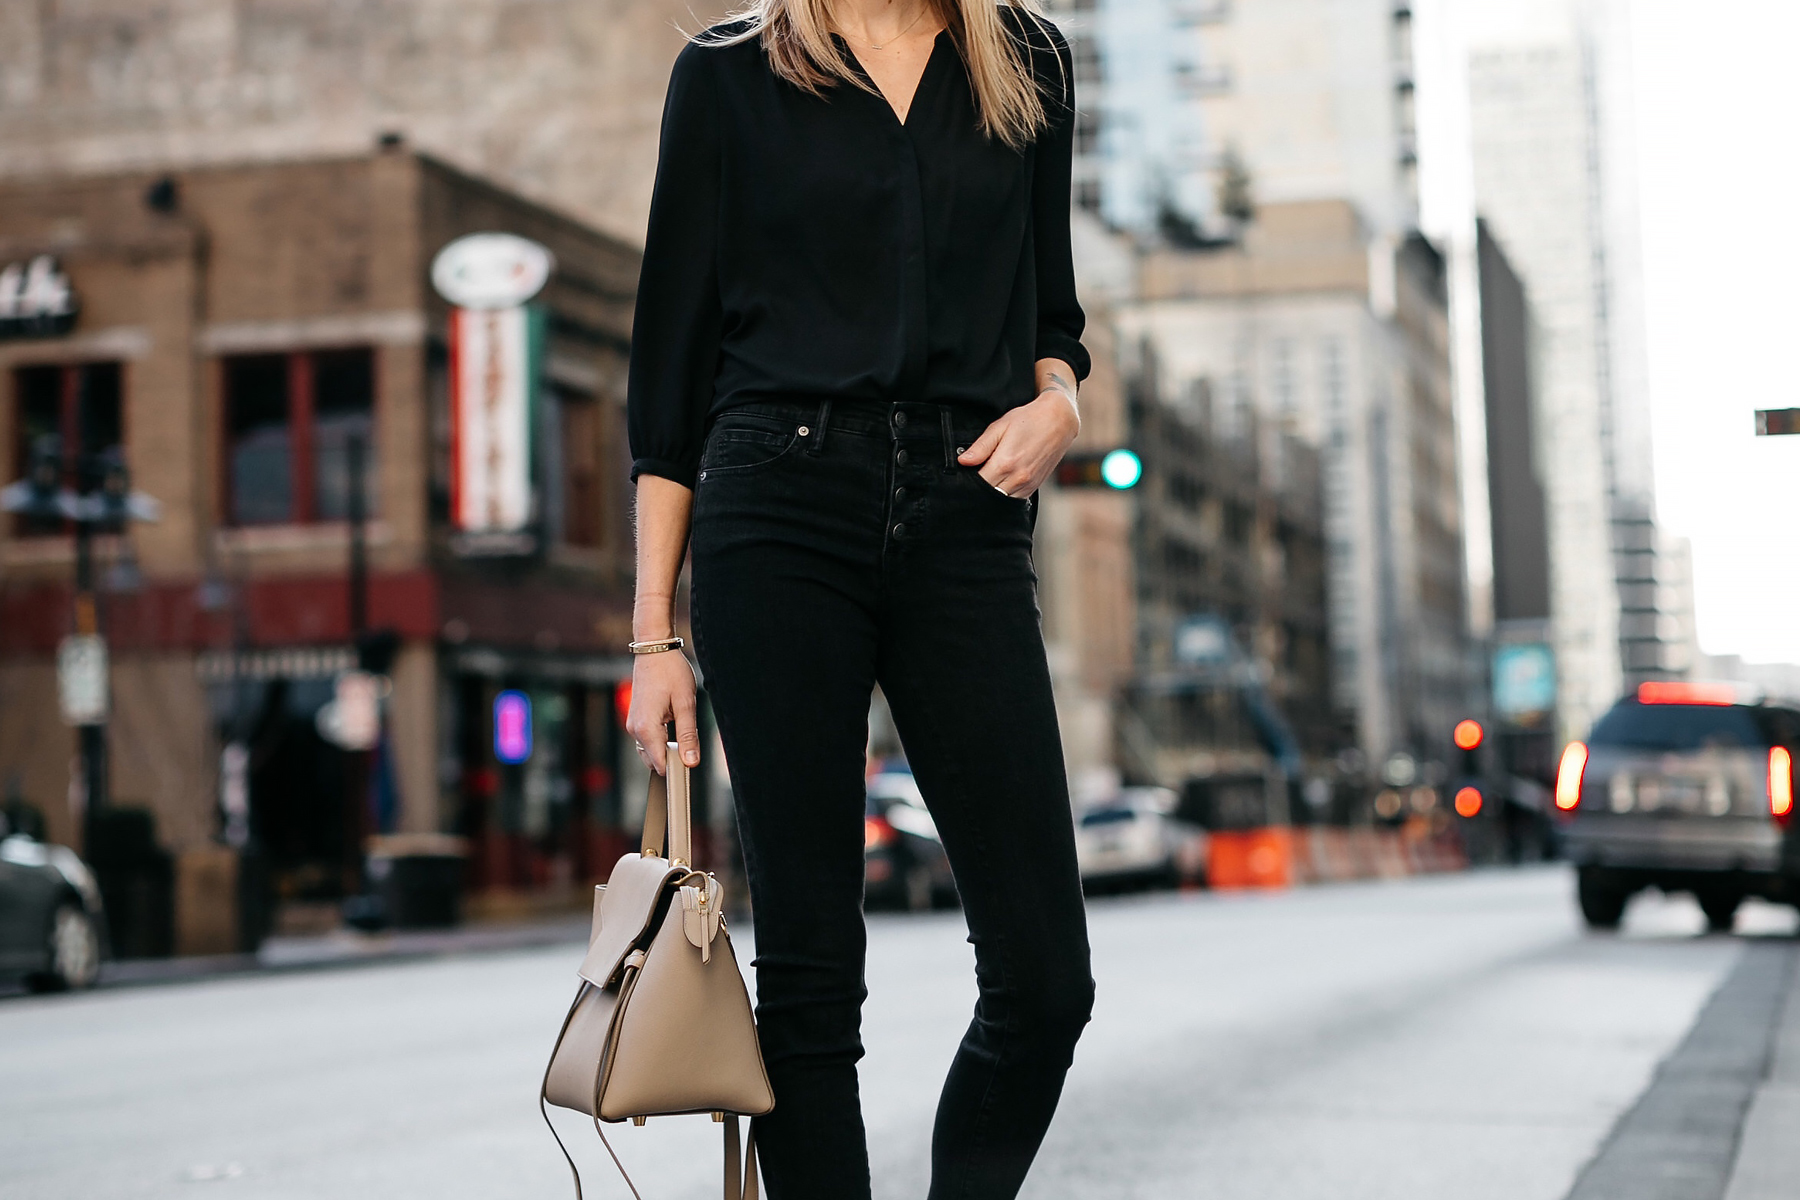 Woman Wearing Black Shirt Madewell Black Jeans Celine Belt Bag Fashion Jackson Dallas Blogger Fashion Blogger Street Style